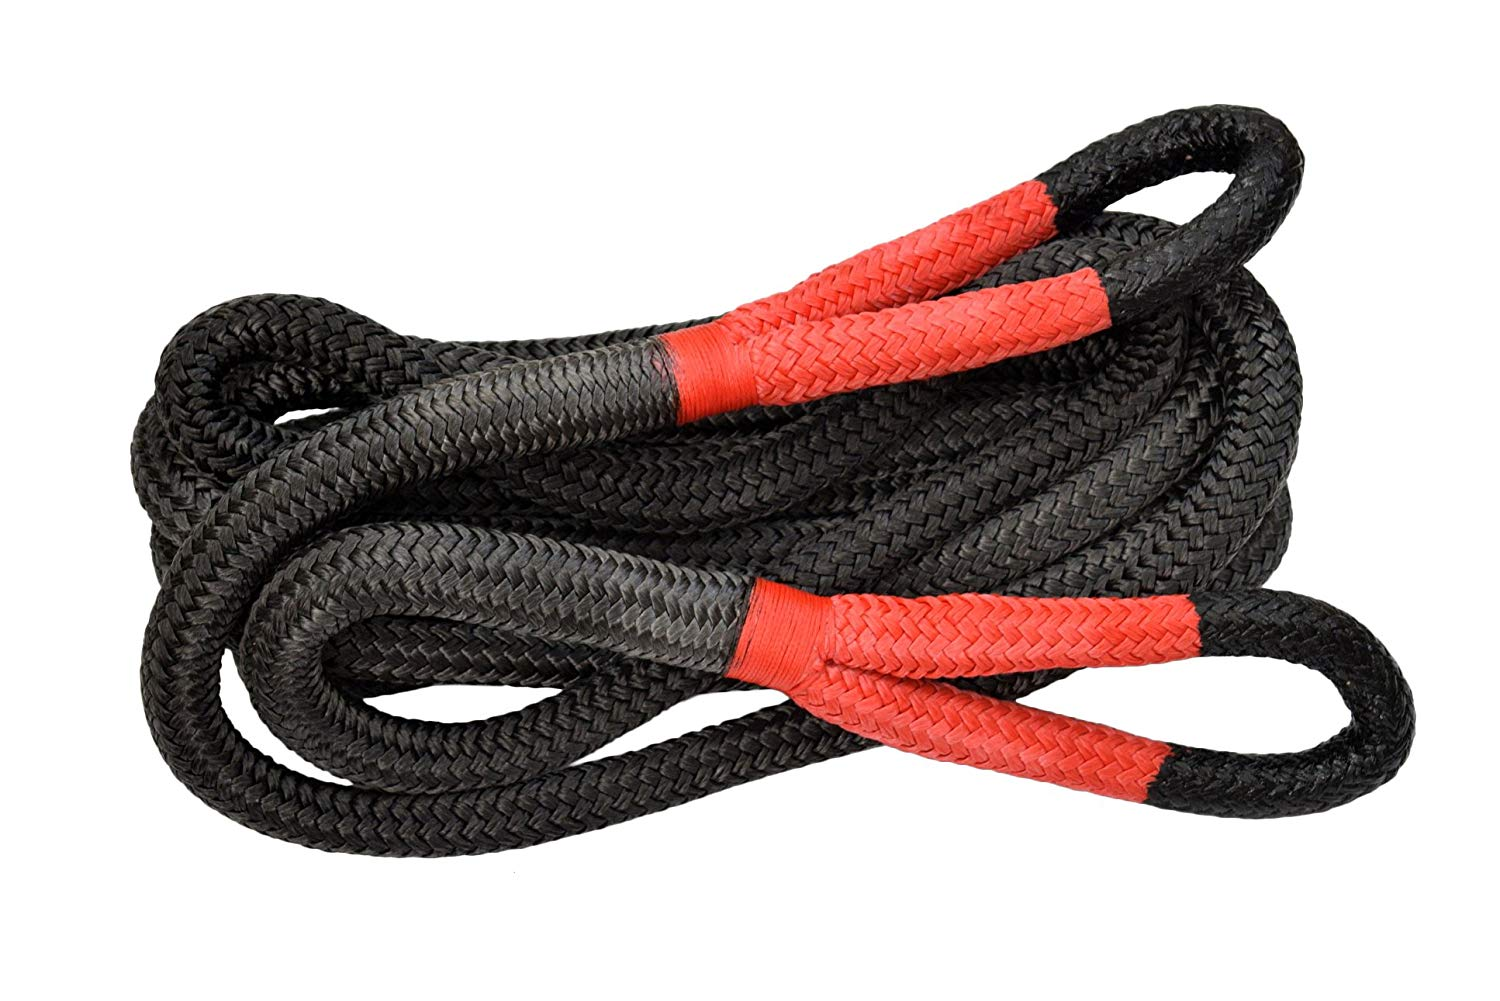 Offroad LKRRWB 3//4 Inch X 20 Foot Kinetic Rope Red//Black Arachni Recovery Equipment A.R.E